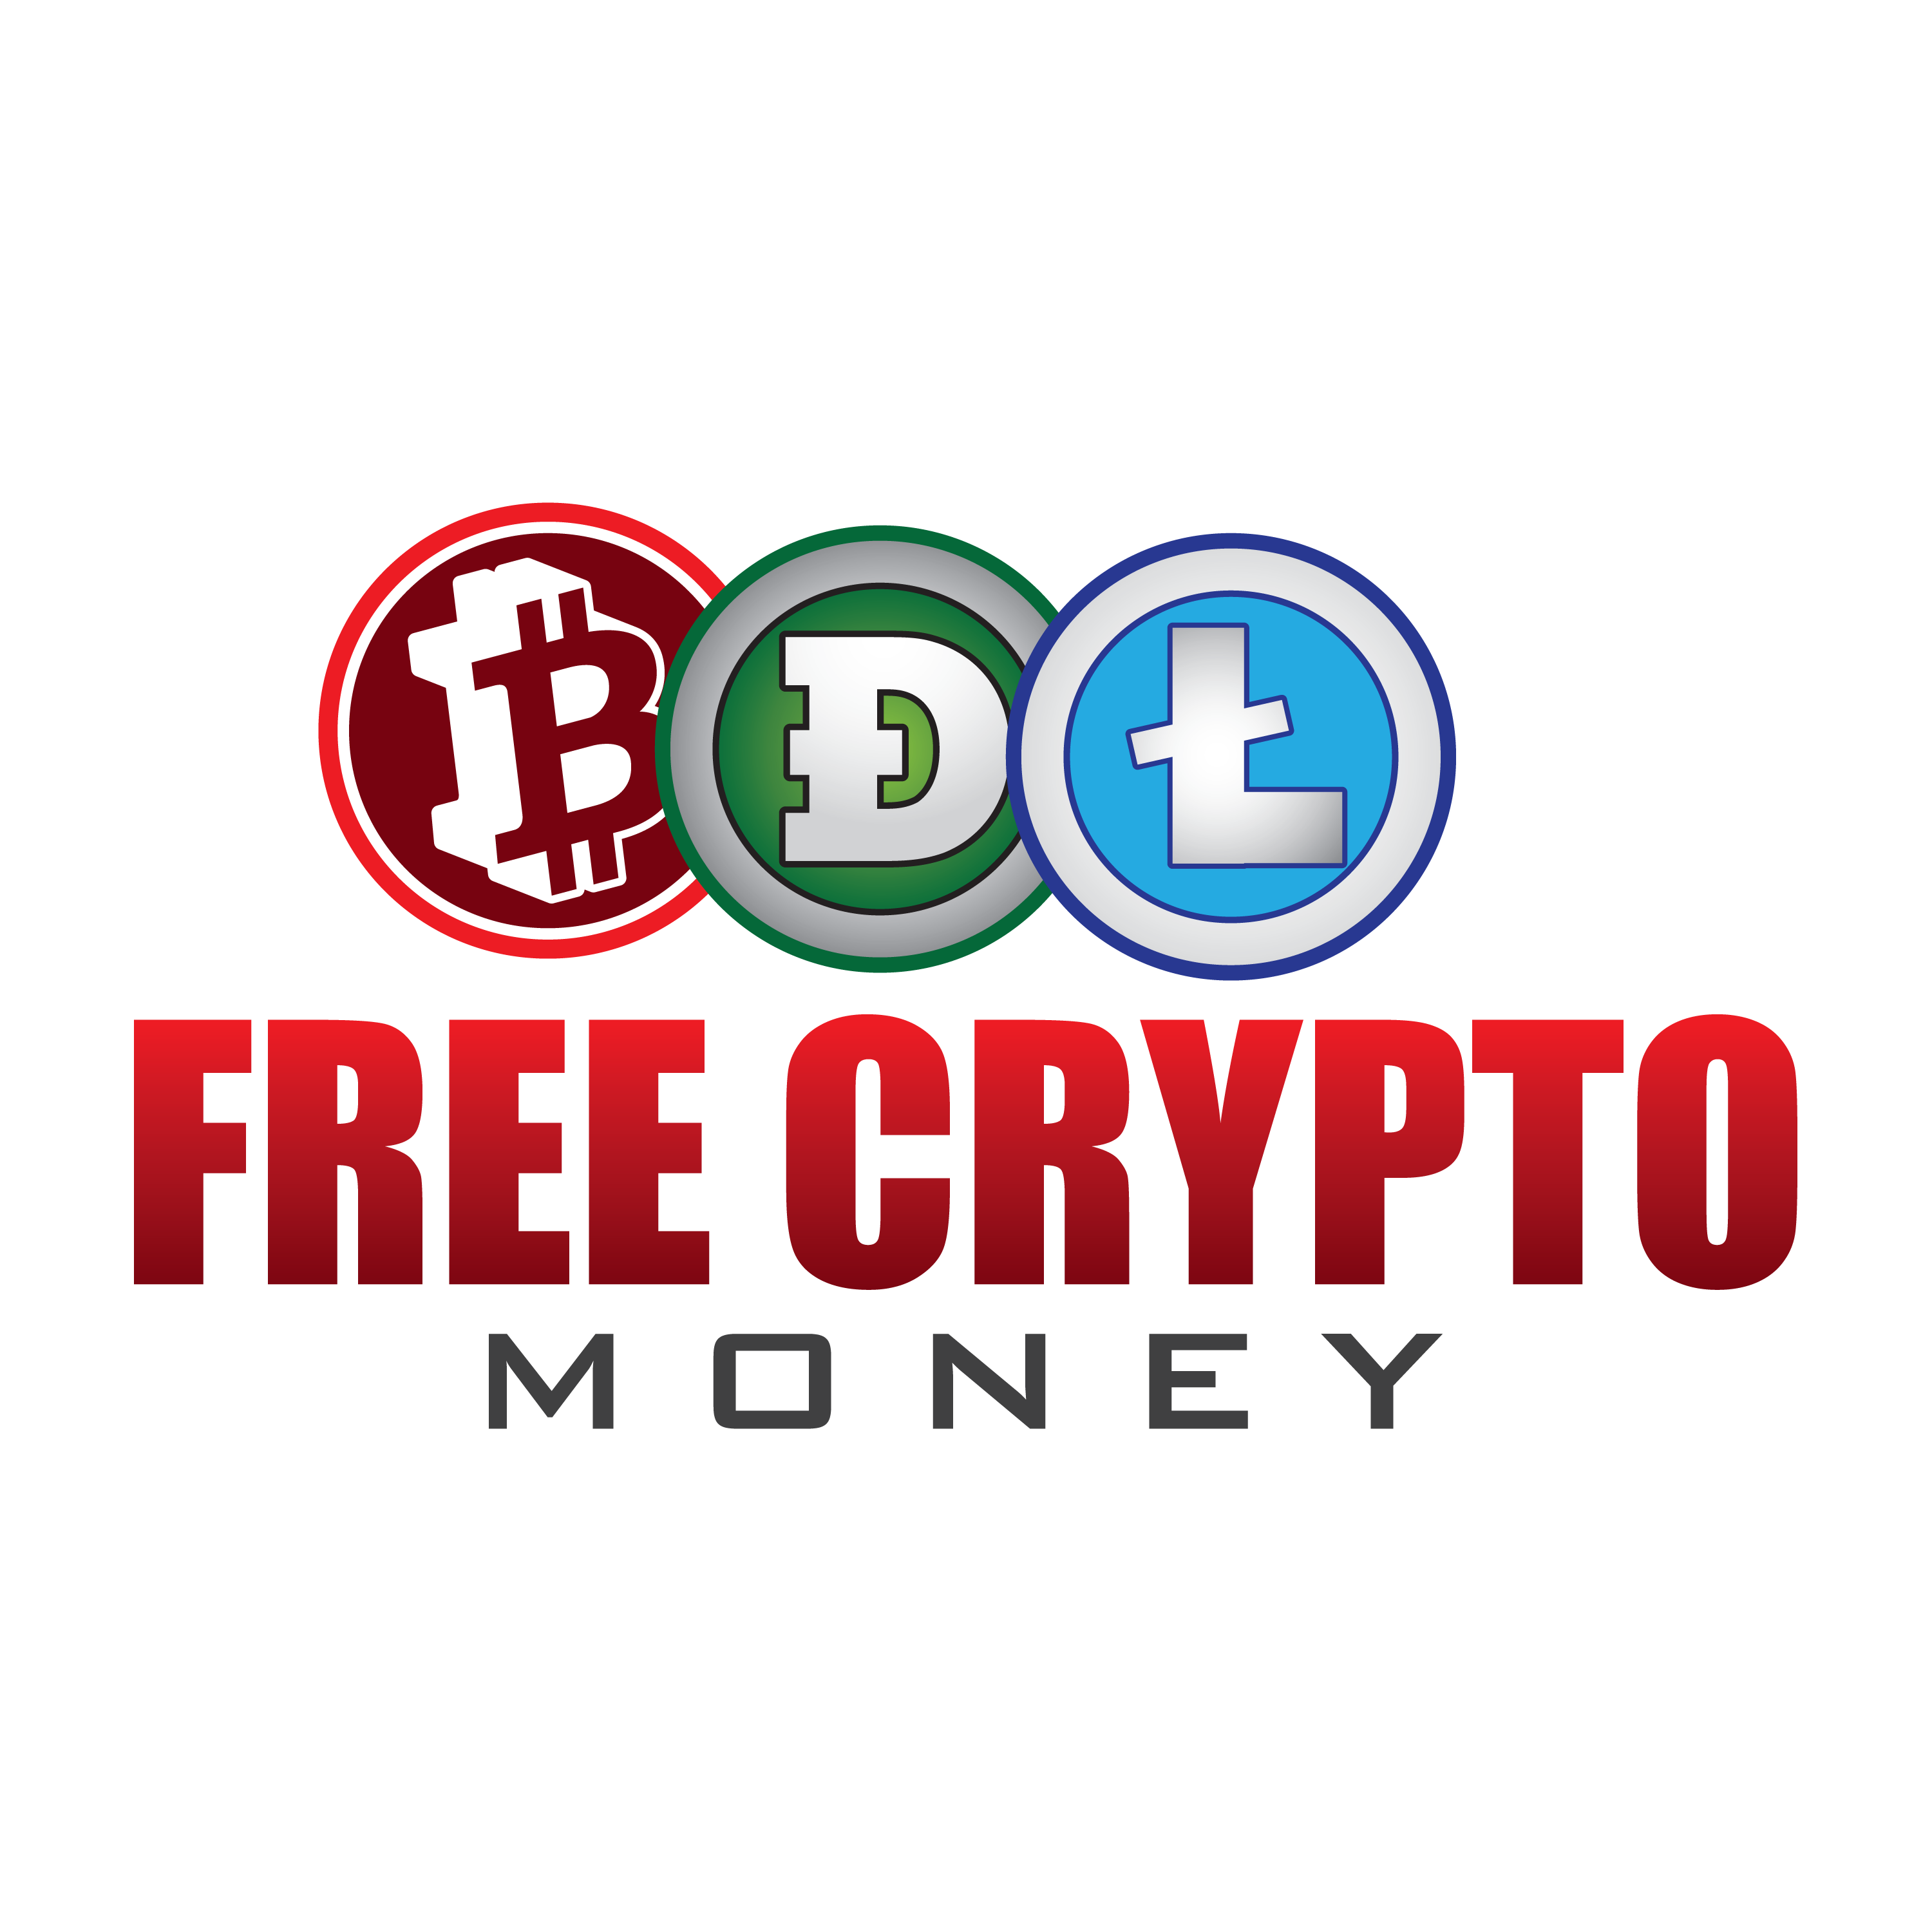 freecryptomoney.com